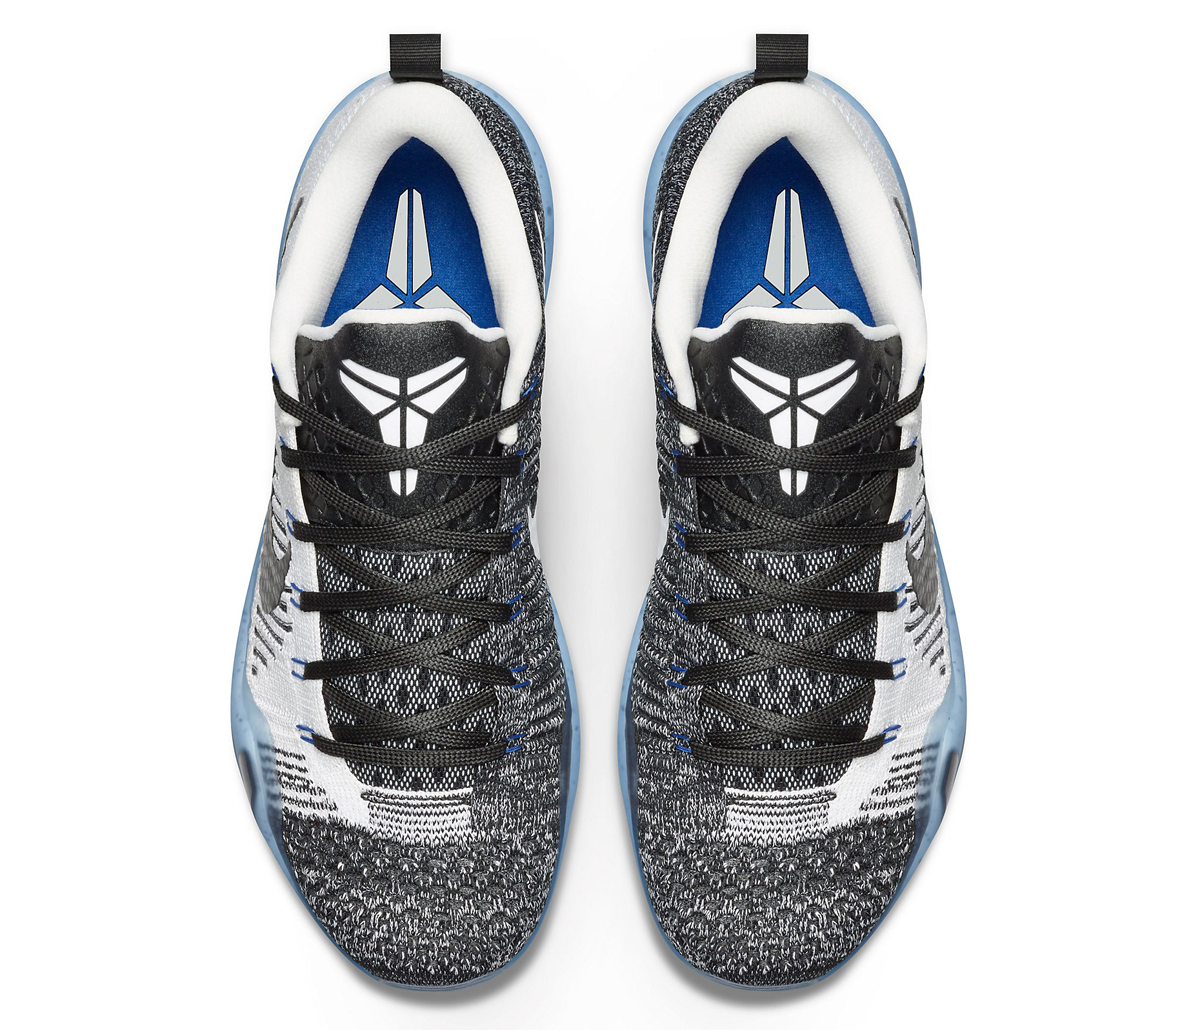 cheap for discount 3a8d6 e8bb3 Nike Just Released the HTM Nike Kobe 10 Elite Lows Online   Sole Collector.  At last. Online Cheap Nike Kobe 10 Elite Low HTM Shark Jaw